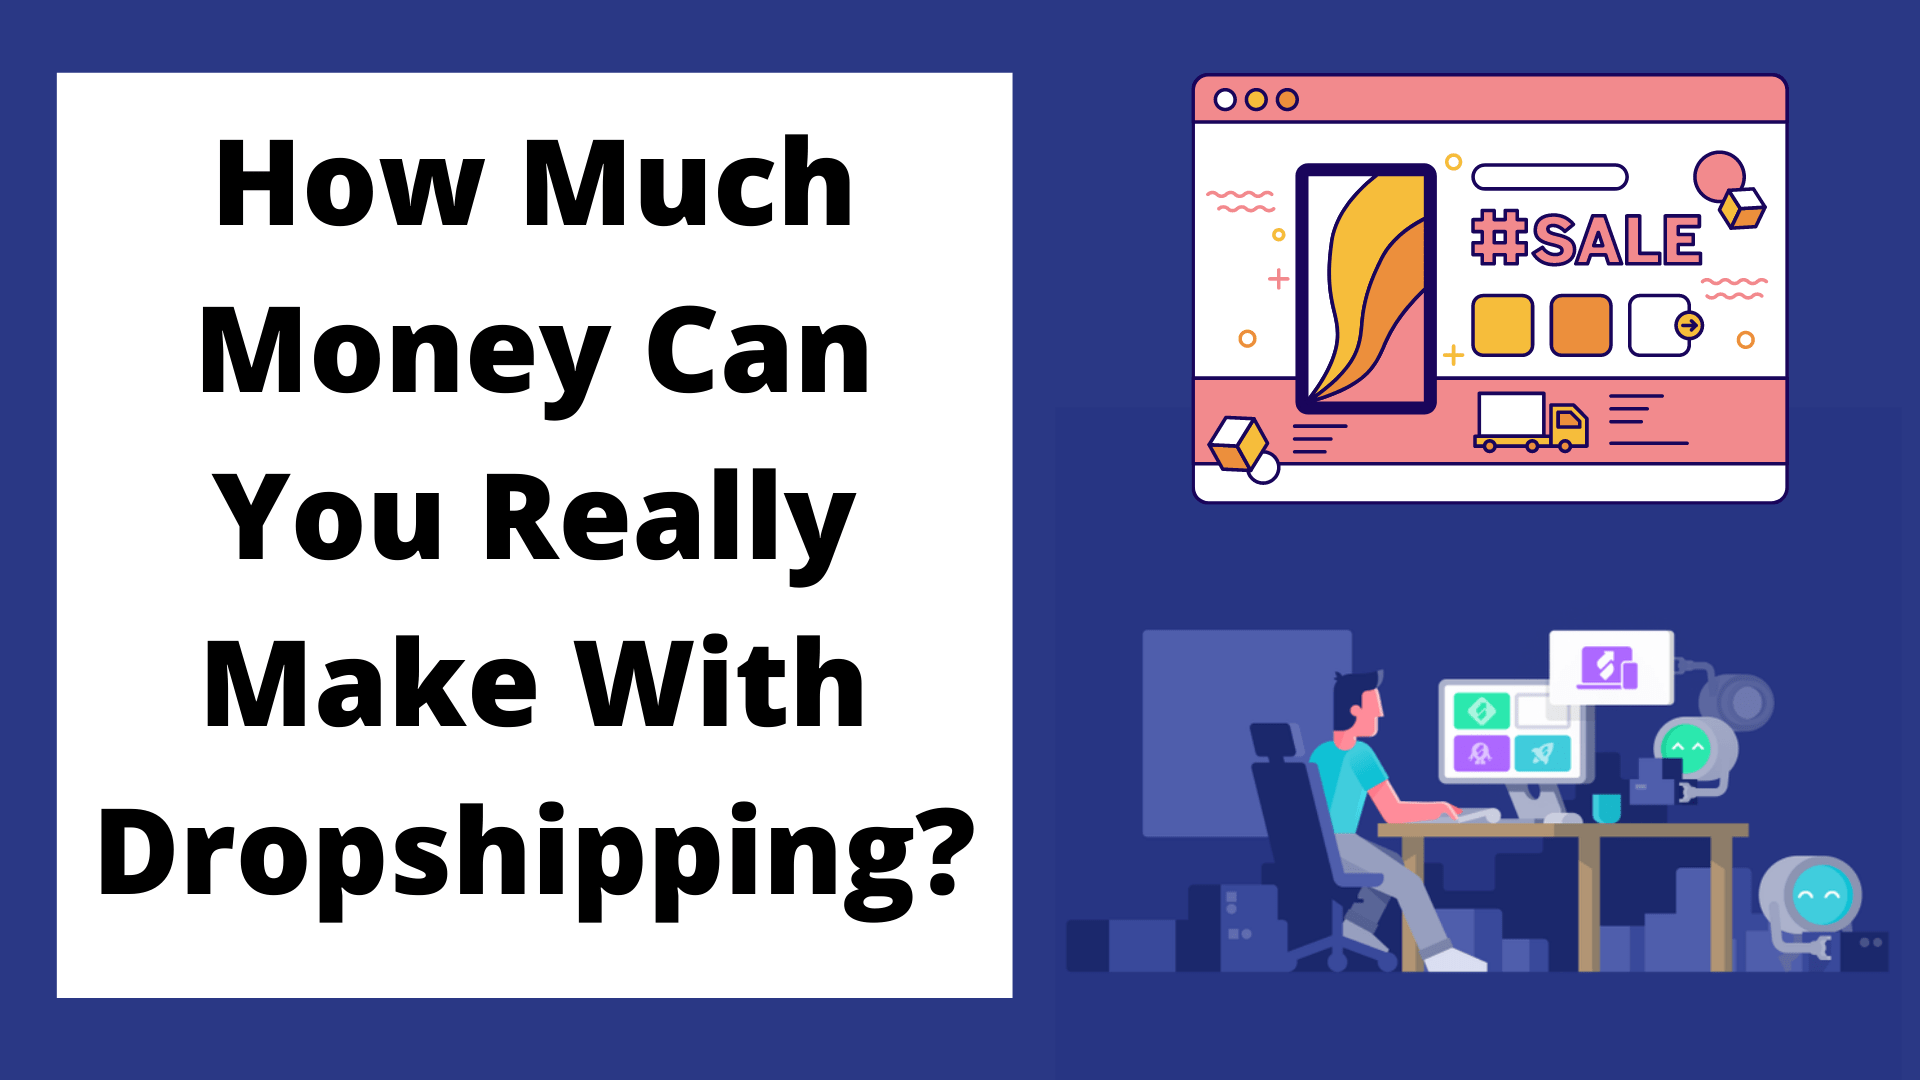 How much money can you make with dropshipping?